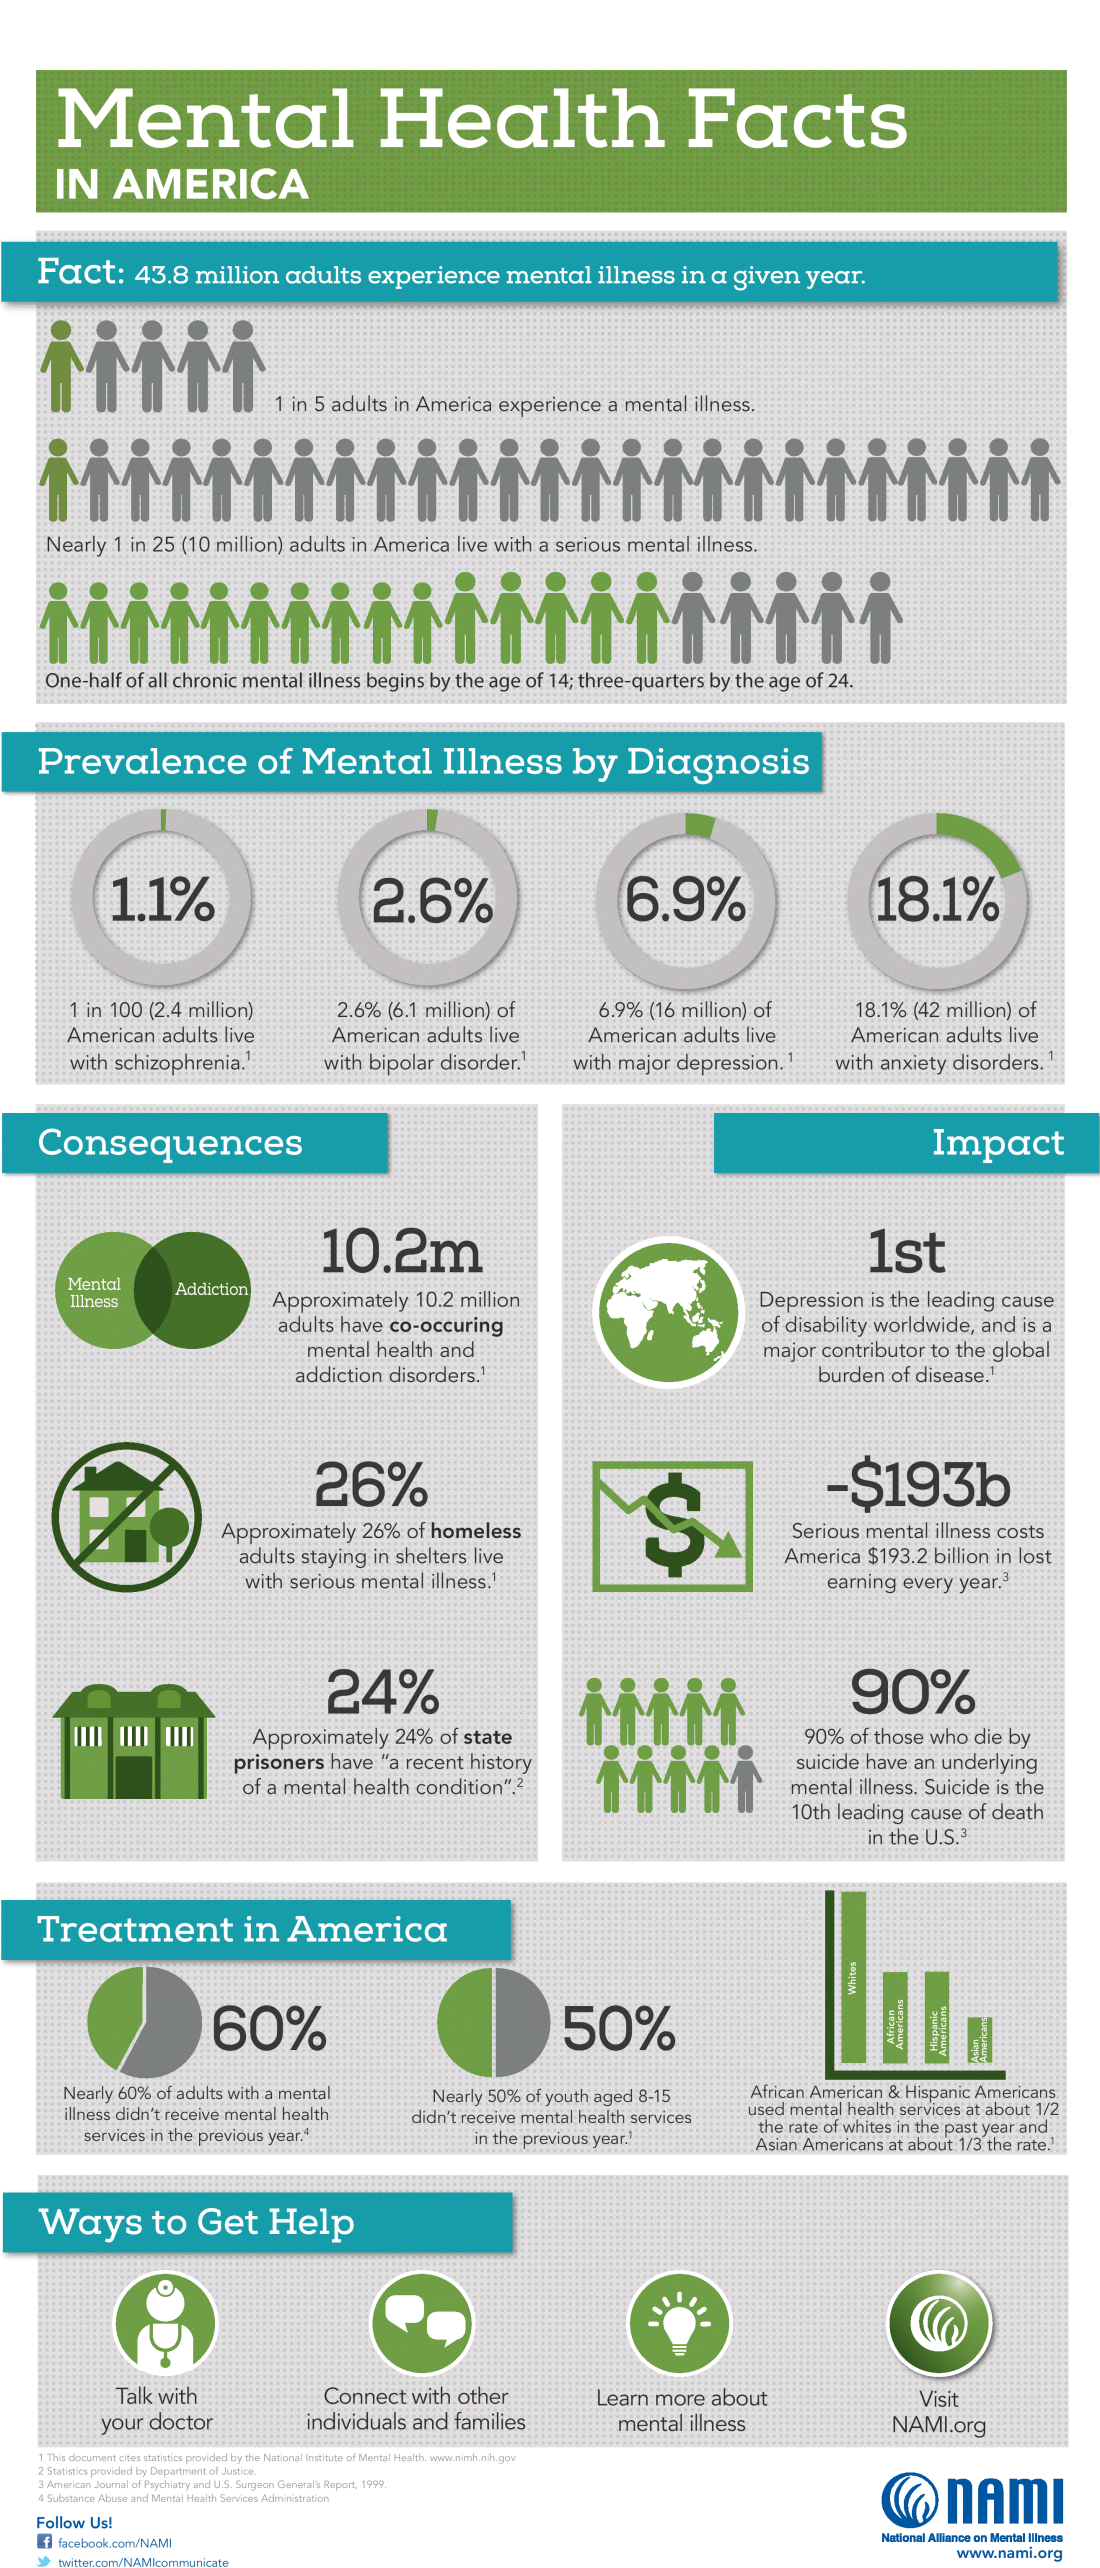 "Mental Health Facts in America 1. Mental Health Facts IN AMERICA Prevalence of Mental Illness by Diagnosis 1.1% 2.6% 6.9% 18.1% 1 in 100 (2.4 million) American adults live with schizophrenia.1 2.6% (6.1 million) of American adults live with bipolar disorder.1 6.9% (16 million) of American adults live with major depression.1 18.1% (42 million) of American adults live with anxiety disorders.1 Treatment in America Nearly 60% of adults with a mental illness didn't receive mental health services in the previous year.4 Nearly 50% of youth aged 8-15 didn't receive mental health services in the previous year.1 African American & Hispanic Americans used mental health services at about 1/2 the rate of whites in the past year and Asian Americans at about 1/3 the rate.1 www.nami.org 1 This document cites statistics provided by the National Institute of Mental Health. www.nimh.nih.gov 2 Statistics provided by Department of Justice. 3 American Journal of Psychiatry and U.S. Surgeon General's Report, 1999. 4 Substance Abuse and Mental Health Services Administration Follow Us! facebook.com/NAMI twitter.com/NAMIcommunicate Ways to Get Help Talk with your doctor Visit NAMI.org Learn more about mental illness Connect with other individuals and families Consequences Impact Fact: 43.8 million adults experience mental illness in a given year. 1 in 5 adults in America experience a mental illness. Nearly 1 in 25 (10 million) adults in America live with a serious mental illness. Approximately 10.2 million adults have co-occuring mental health and addiction disorders.1 Approximately 26% of homeless adults staying in shelters live with serious mental illness.1 26% 10.2m Approximately 24% of state prisoners have ""a recent history of a mental health condition"".2 24% Mental Illness Addiction 90% of those who die by suicide have an underlying mental illness. Suicide is the 10th leading cause of death in the U.S.3 90% Depression is the leading cause of disability worldwide, and is a major contributor to the global burden of disease.1 1st -$193b Serious mental illness costs America $193.2 billion in lost earning every year.3 $ One-half of all chronic mental illness begins by the age of 14; three-quarters by the age of 24. Whites African Americans Hispanic Americans Asian Americans 60% 50%"